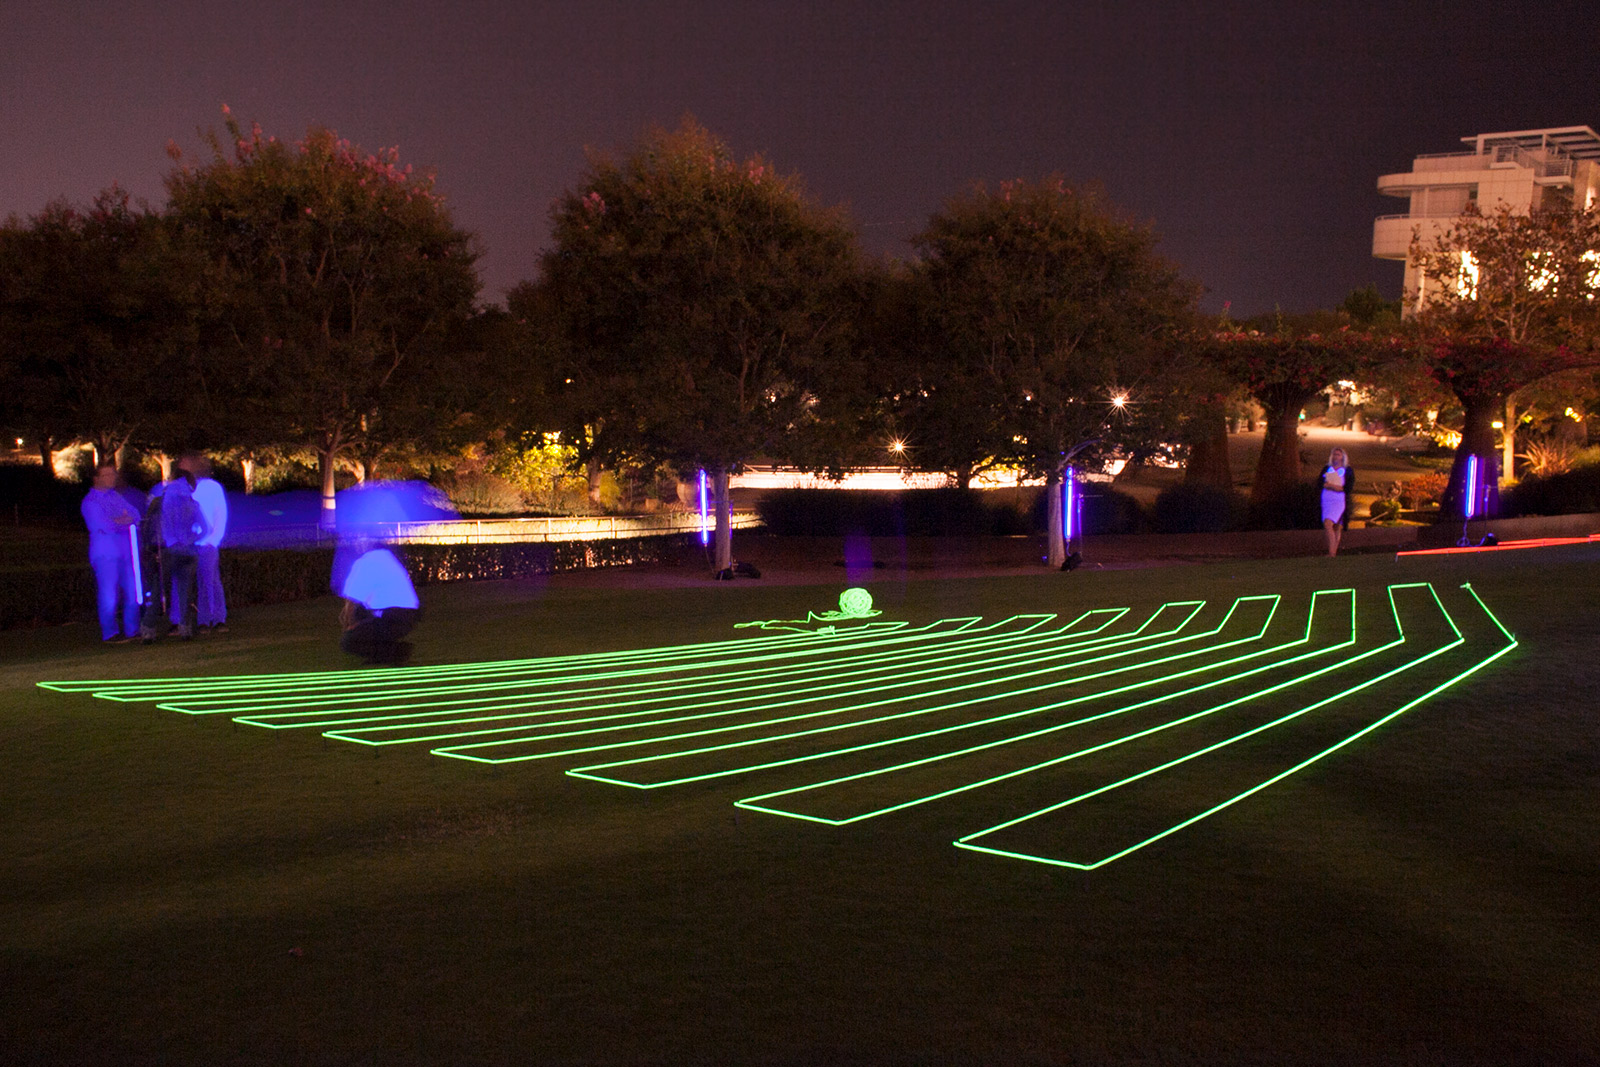 Nighttime view of a large lawn with thick, fluorescent-glowing rope arrayed in a geometric pattern